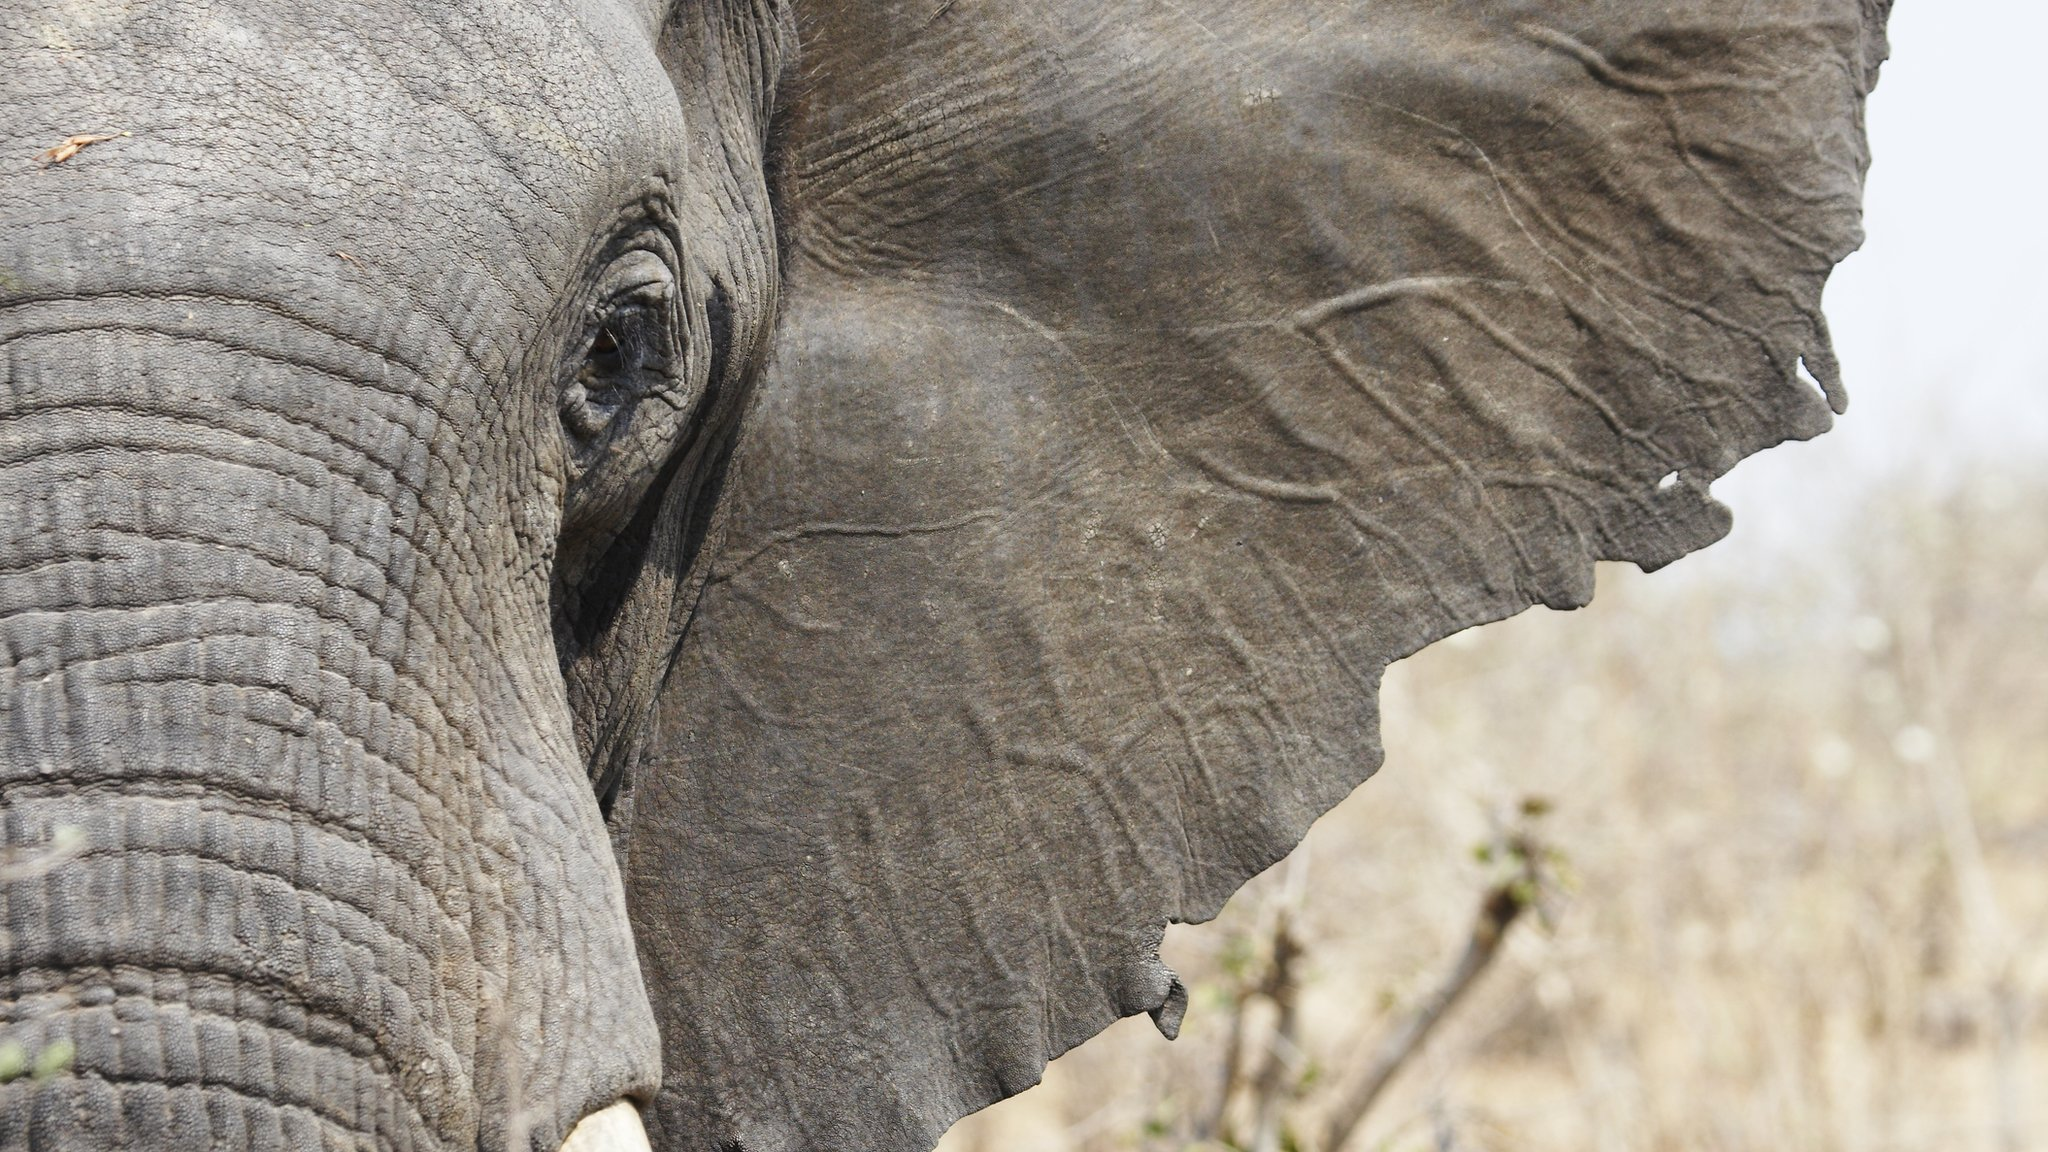 Bbc Tv Shows >> World Elephant Day: Should we be worried about the number of elephants? - CBBC Newsround